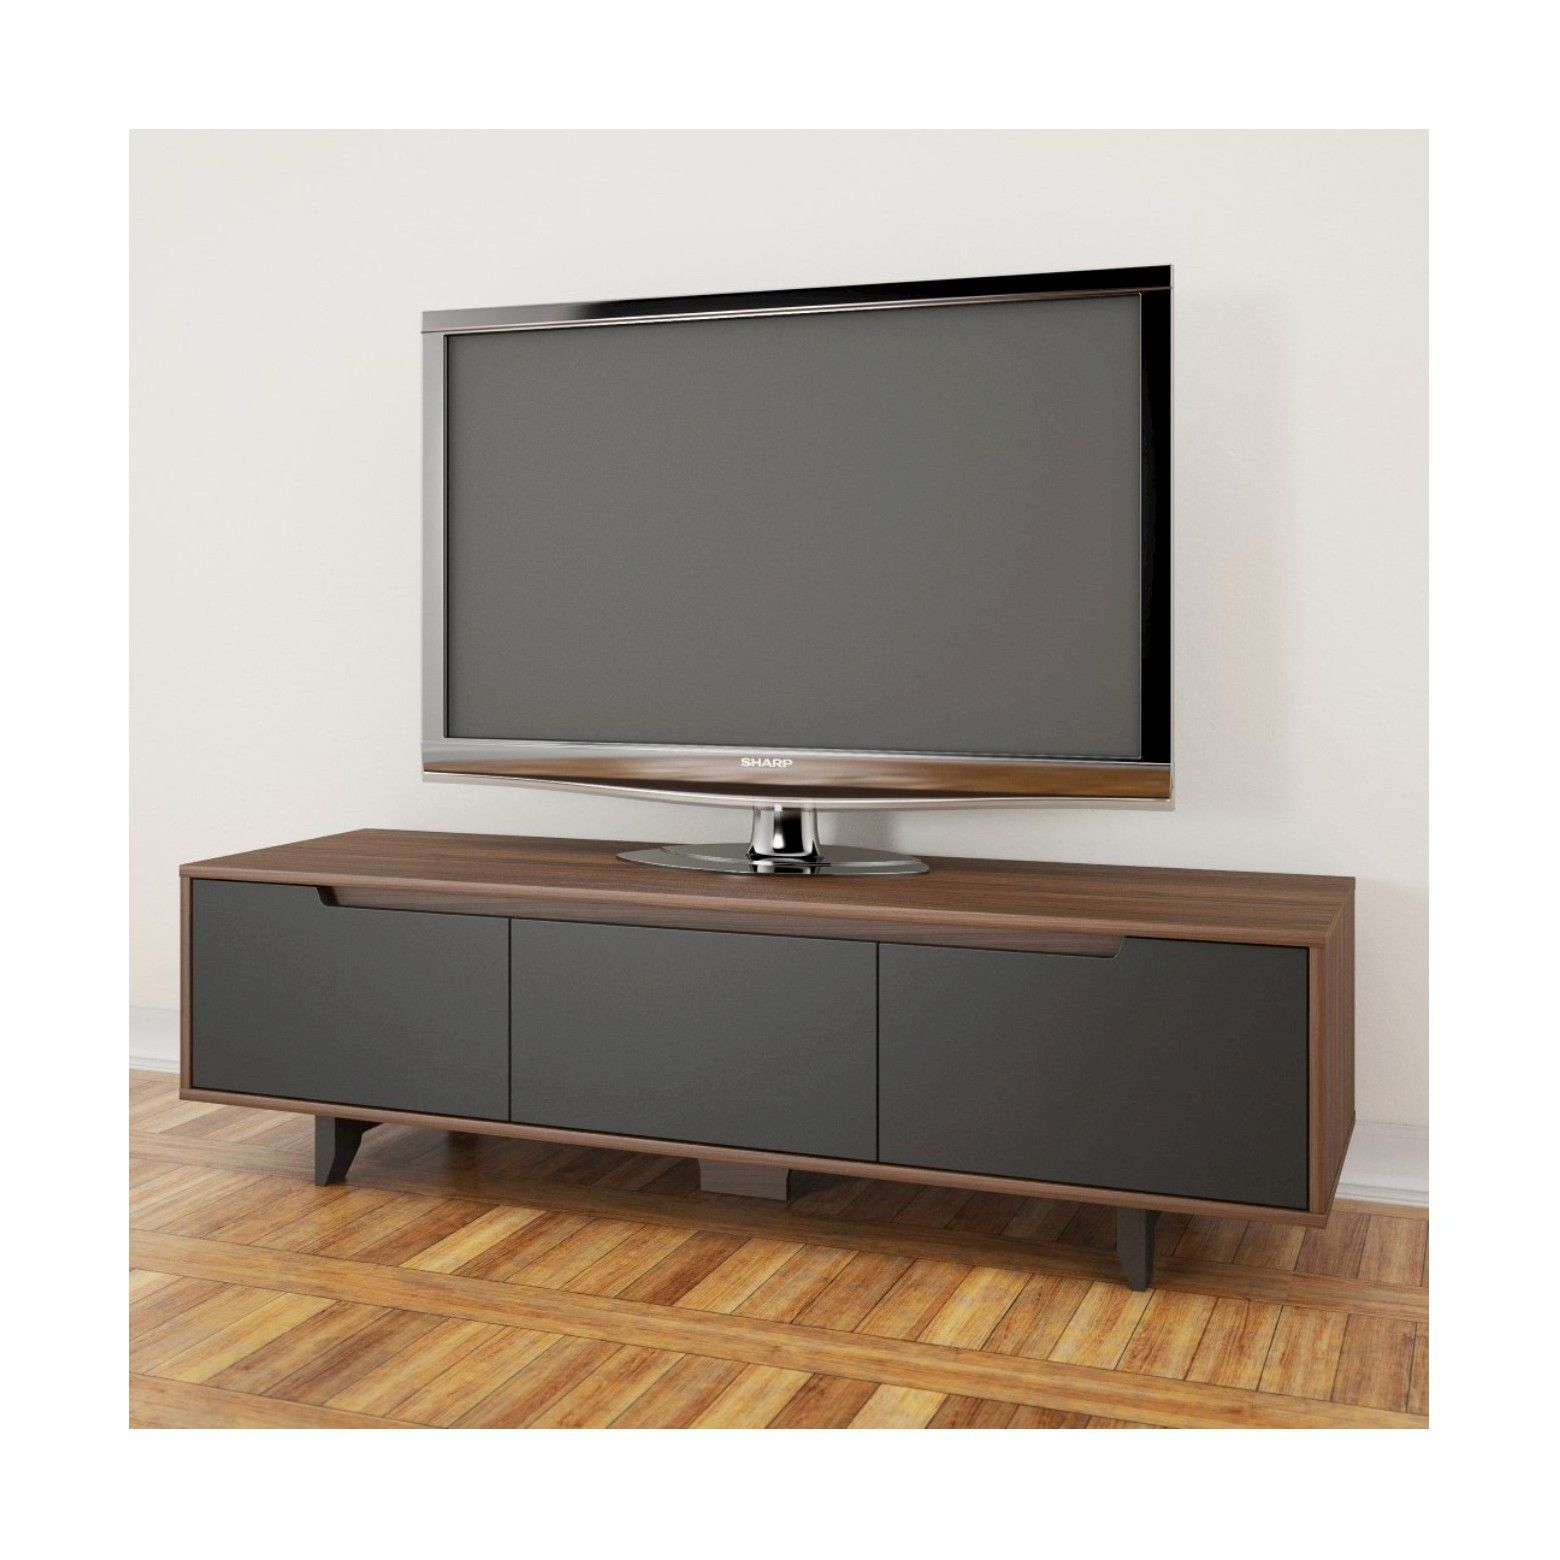 Malibu TV Stand 60 Walnut Brown & Charcoal Nexera